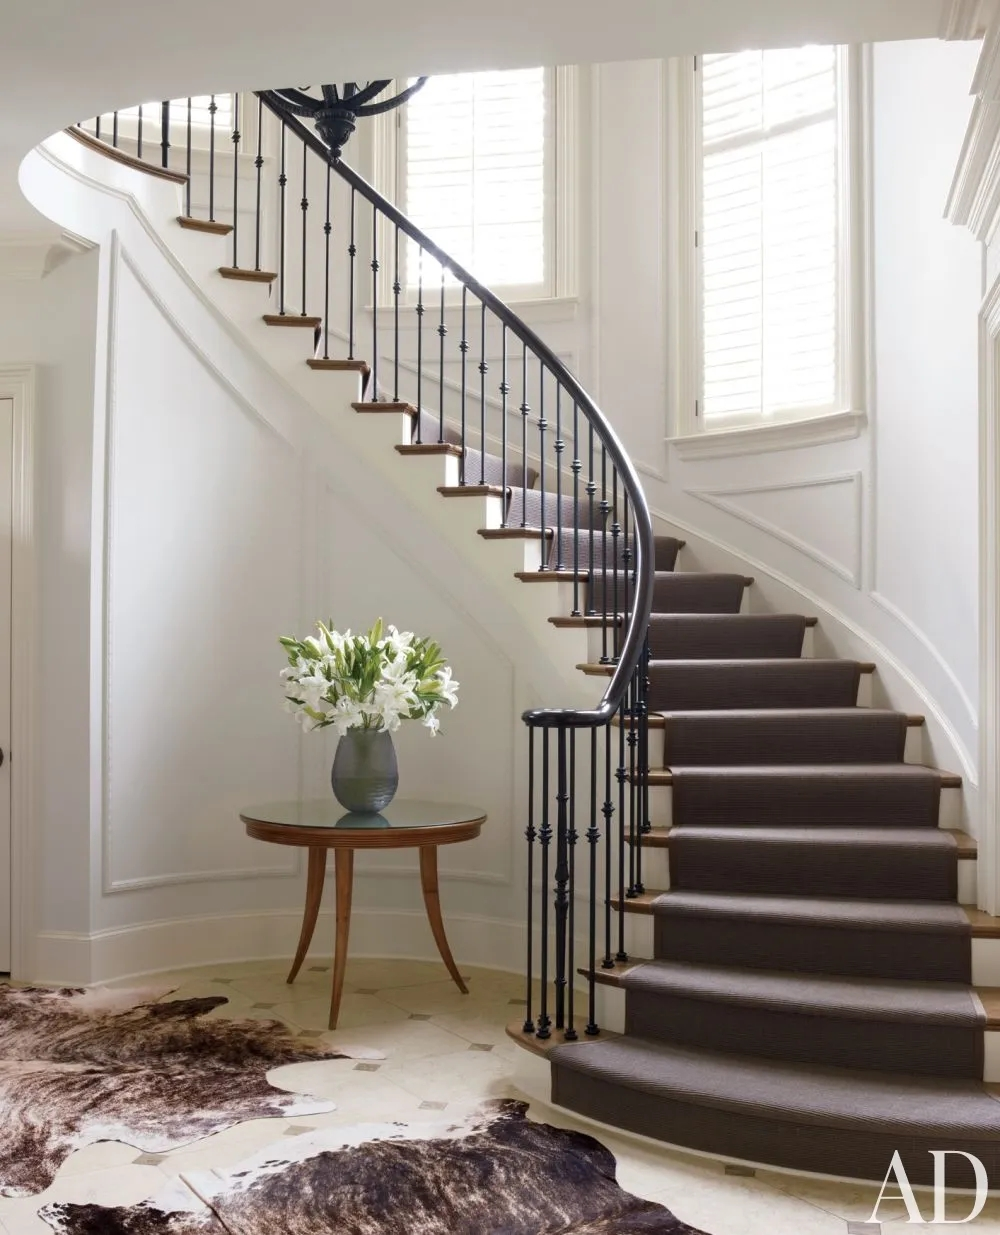 Types Of Stairs Explained Architectural Digest | Half Round Stairs Design | Half Circle Staircase | Frame | Plan | Metal | Indian Style